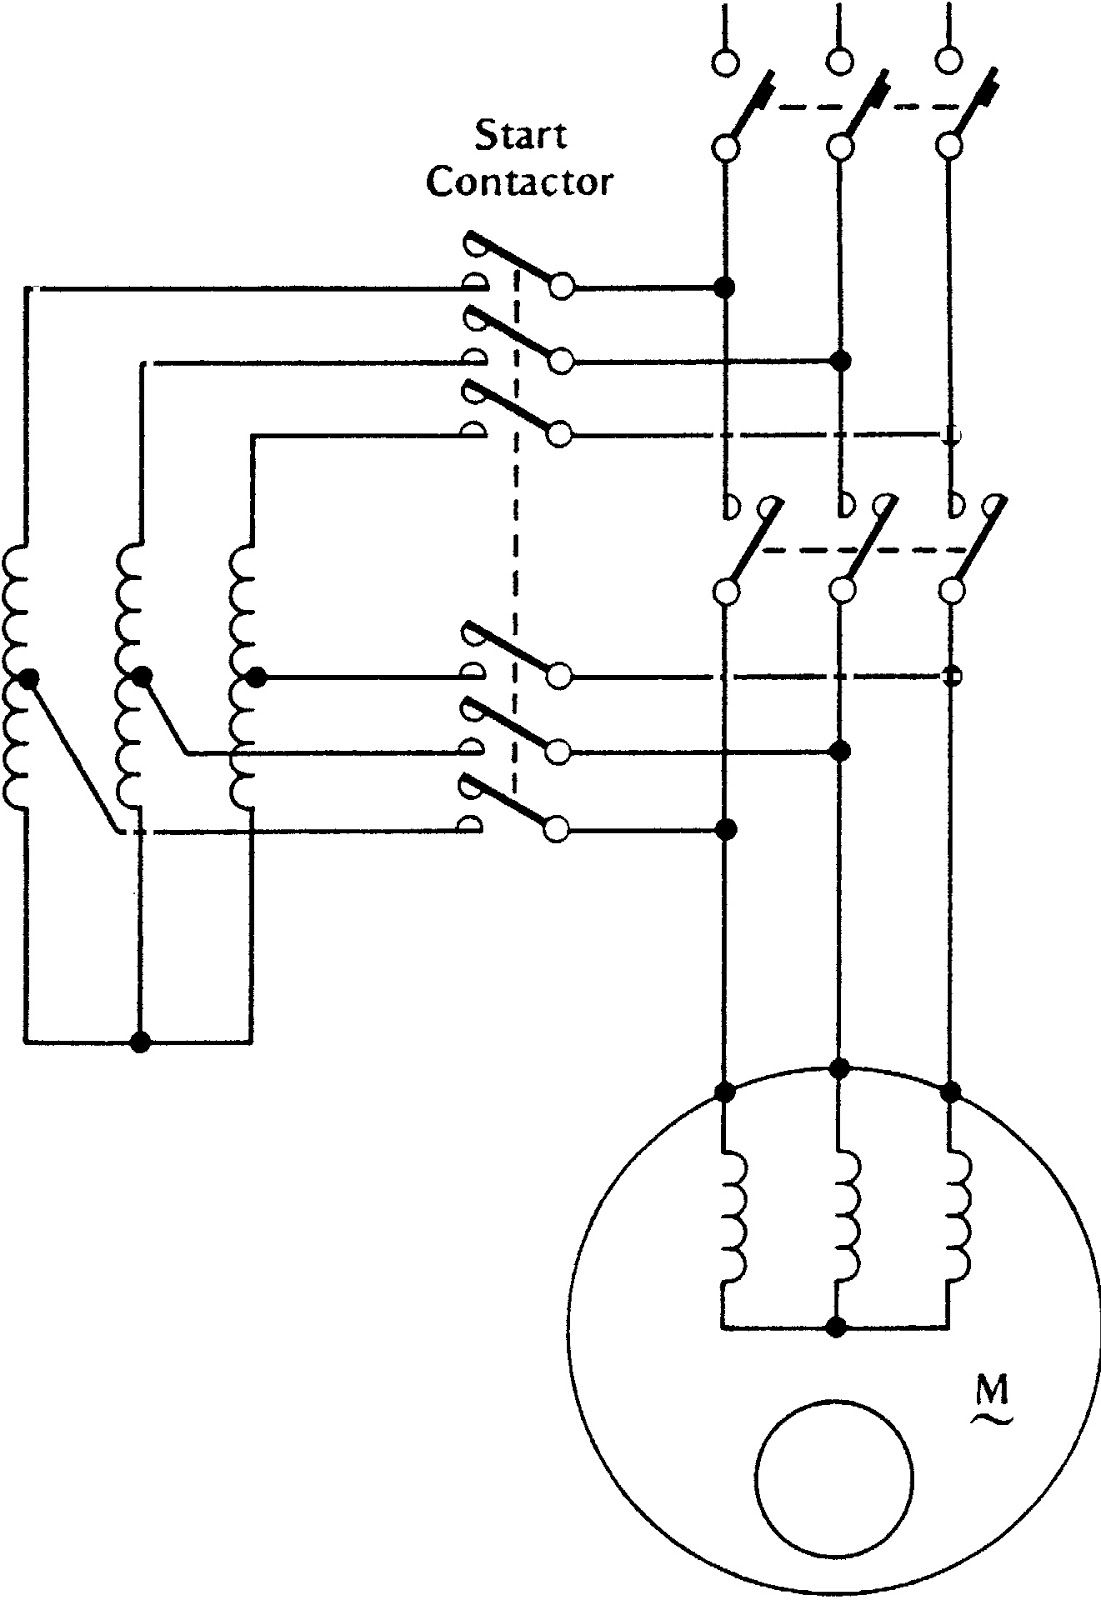 Single Phase Autotransformer Wiring Diagram on wiring diagram of star delta starter